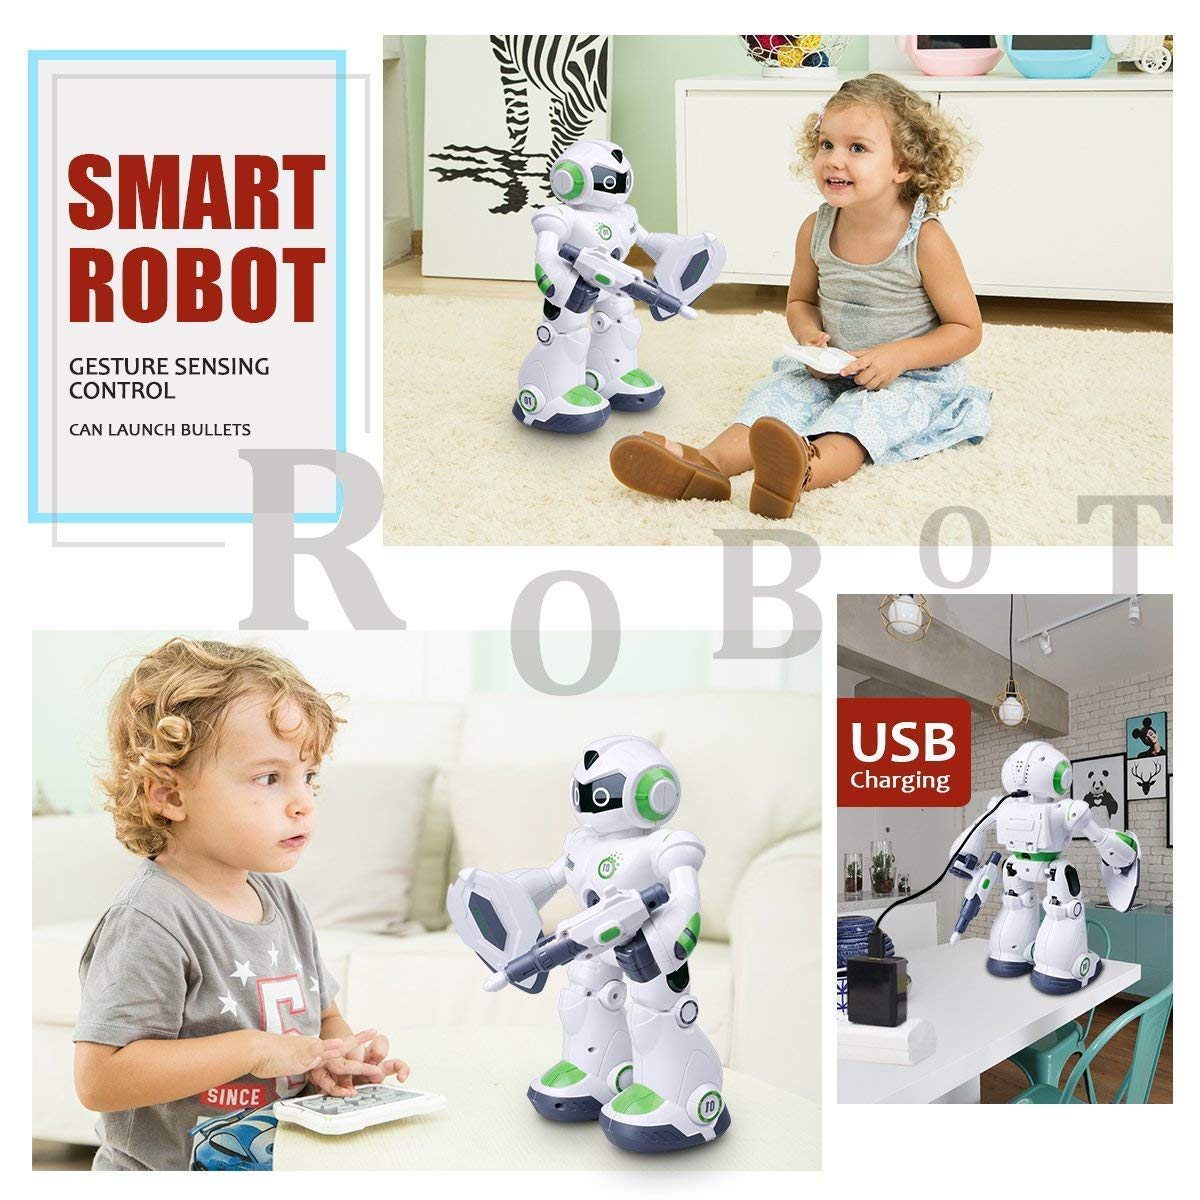 Remote Control Robot,Robot Toys,Smart Robotics for Kids with Gesture Sense, Interactive Walking Singing Dancing Speaking,with LED Light, Shoots Missiles, Talking, Walking, Singing, Educational Toys by Locke Teddy (Image #2)